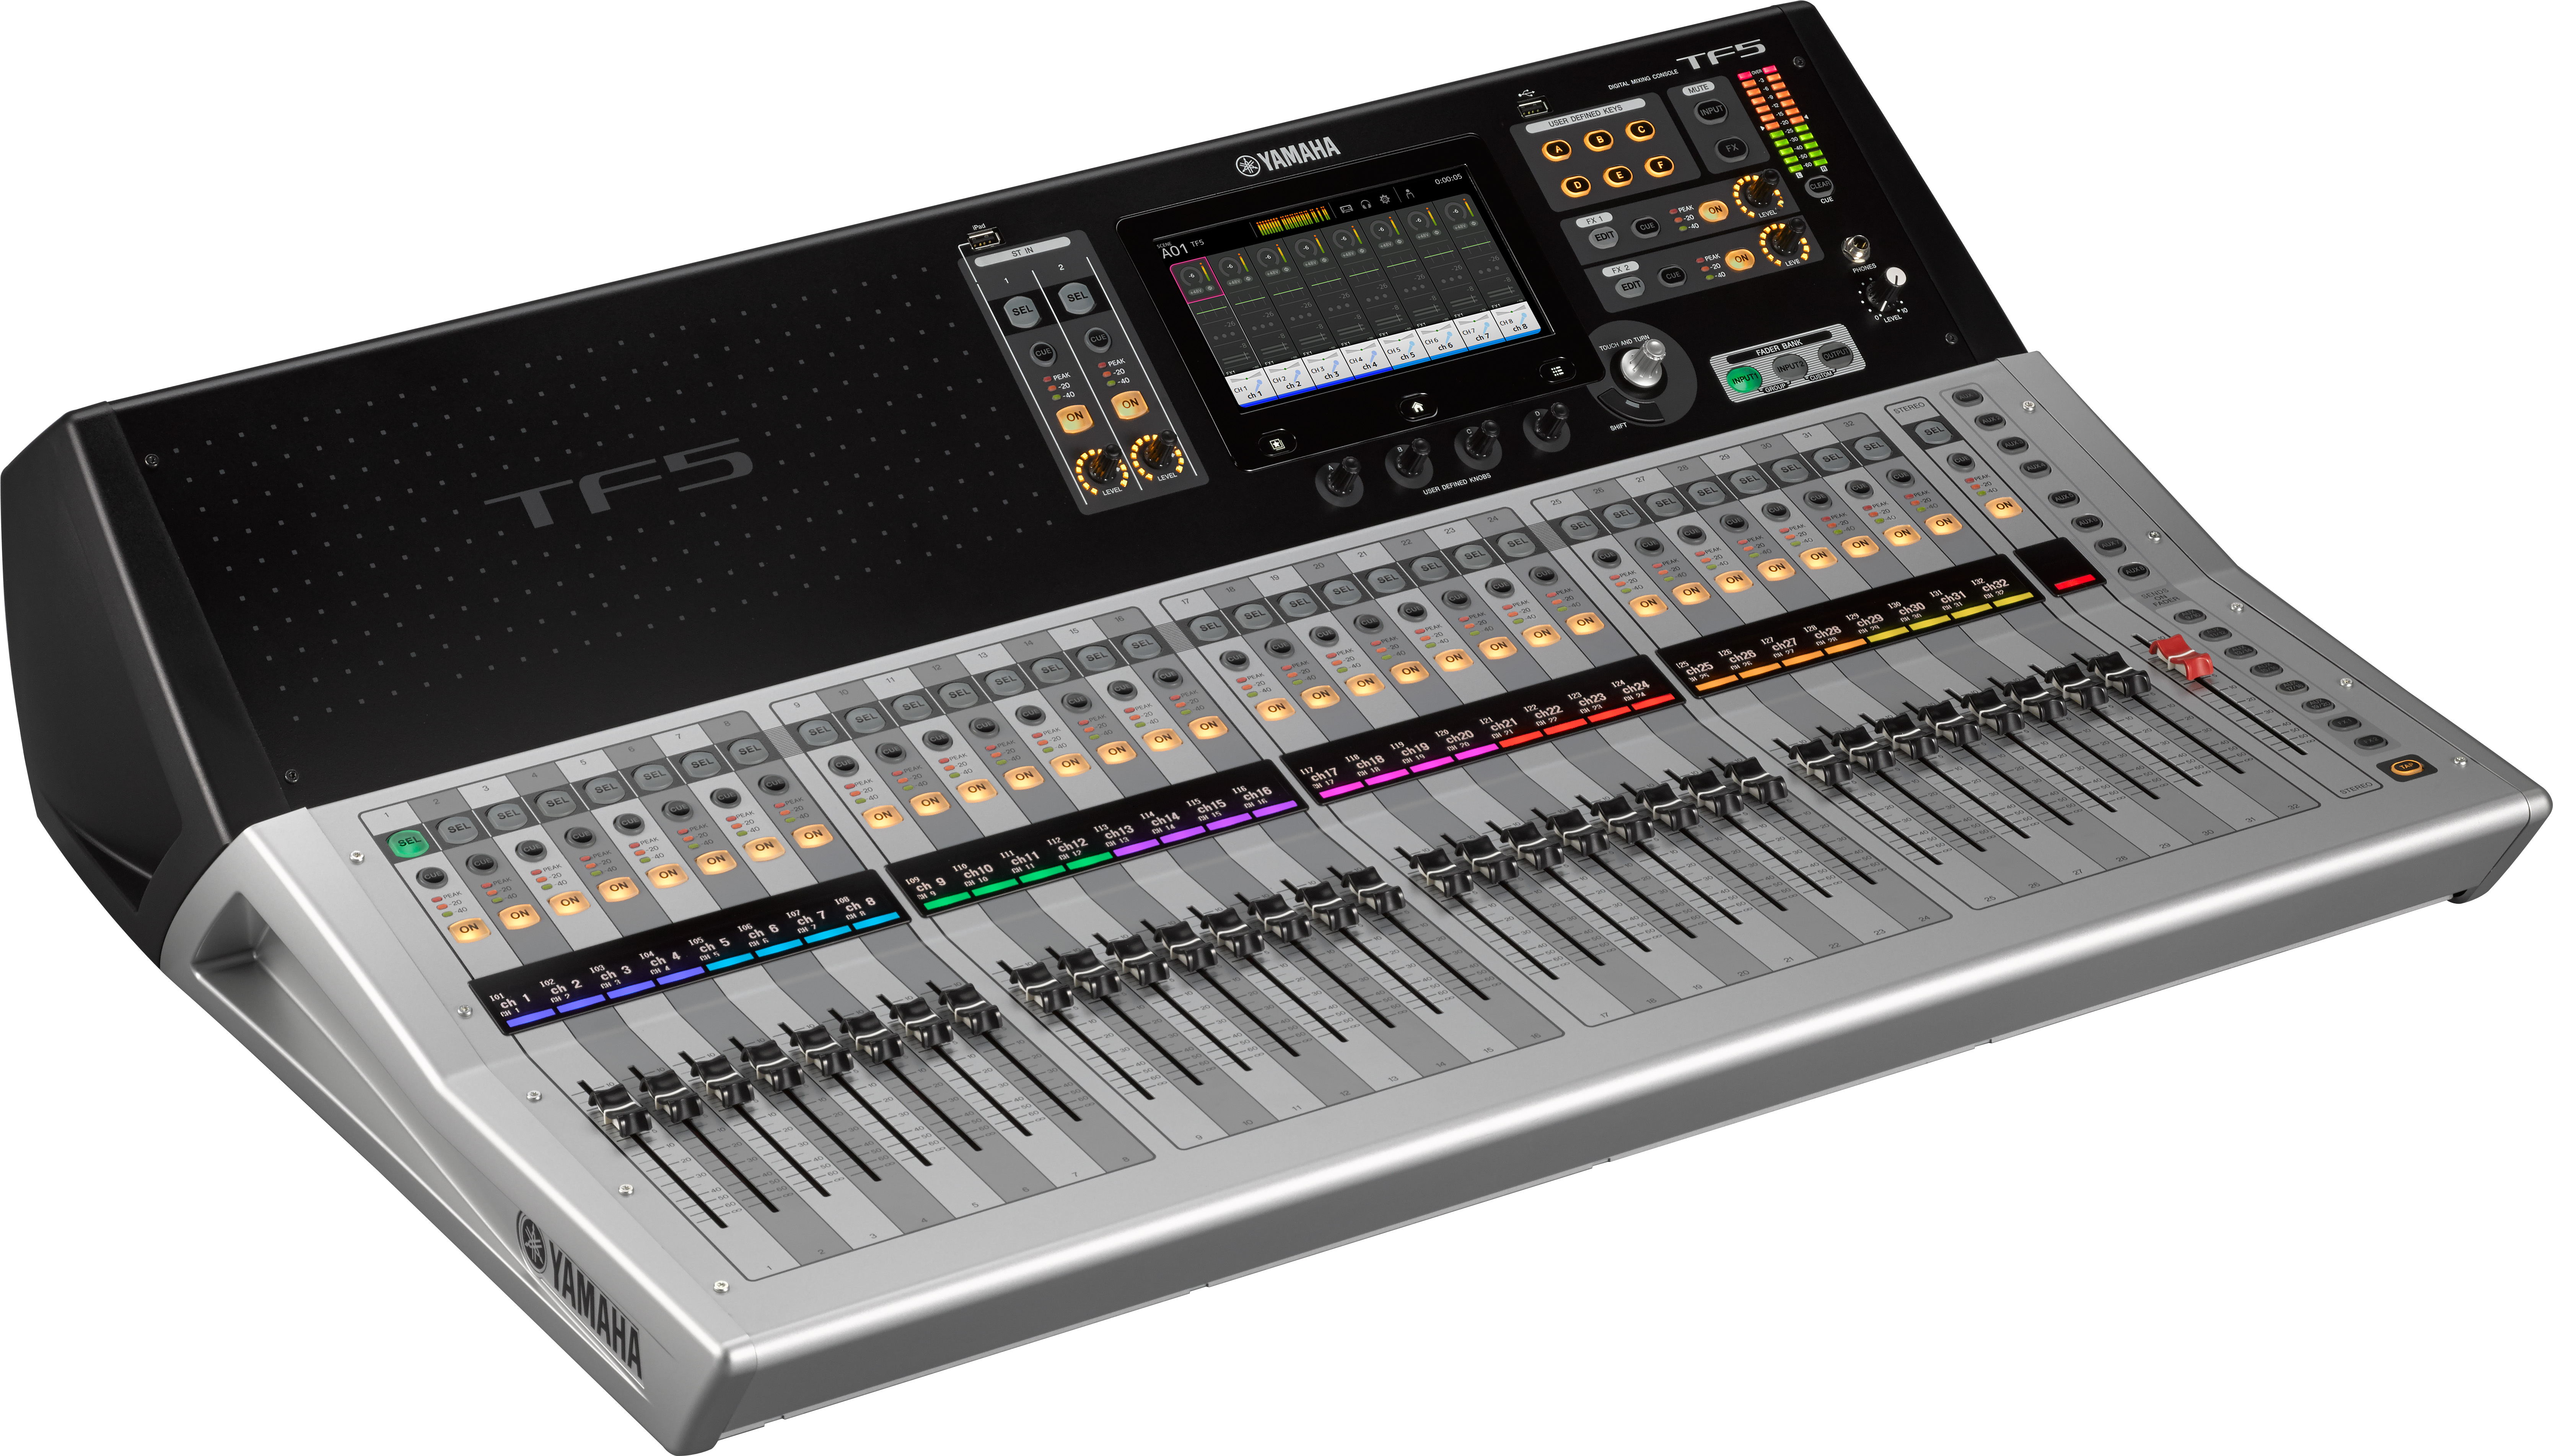 design meets intuition yamaha tf series digital consoles reimagine small to mid format mixer. Black Bedroom Furniture Sets. Home Design Ideas